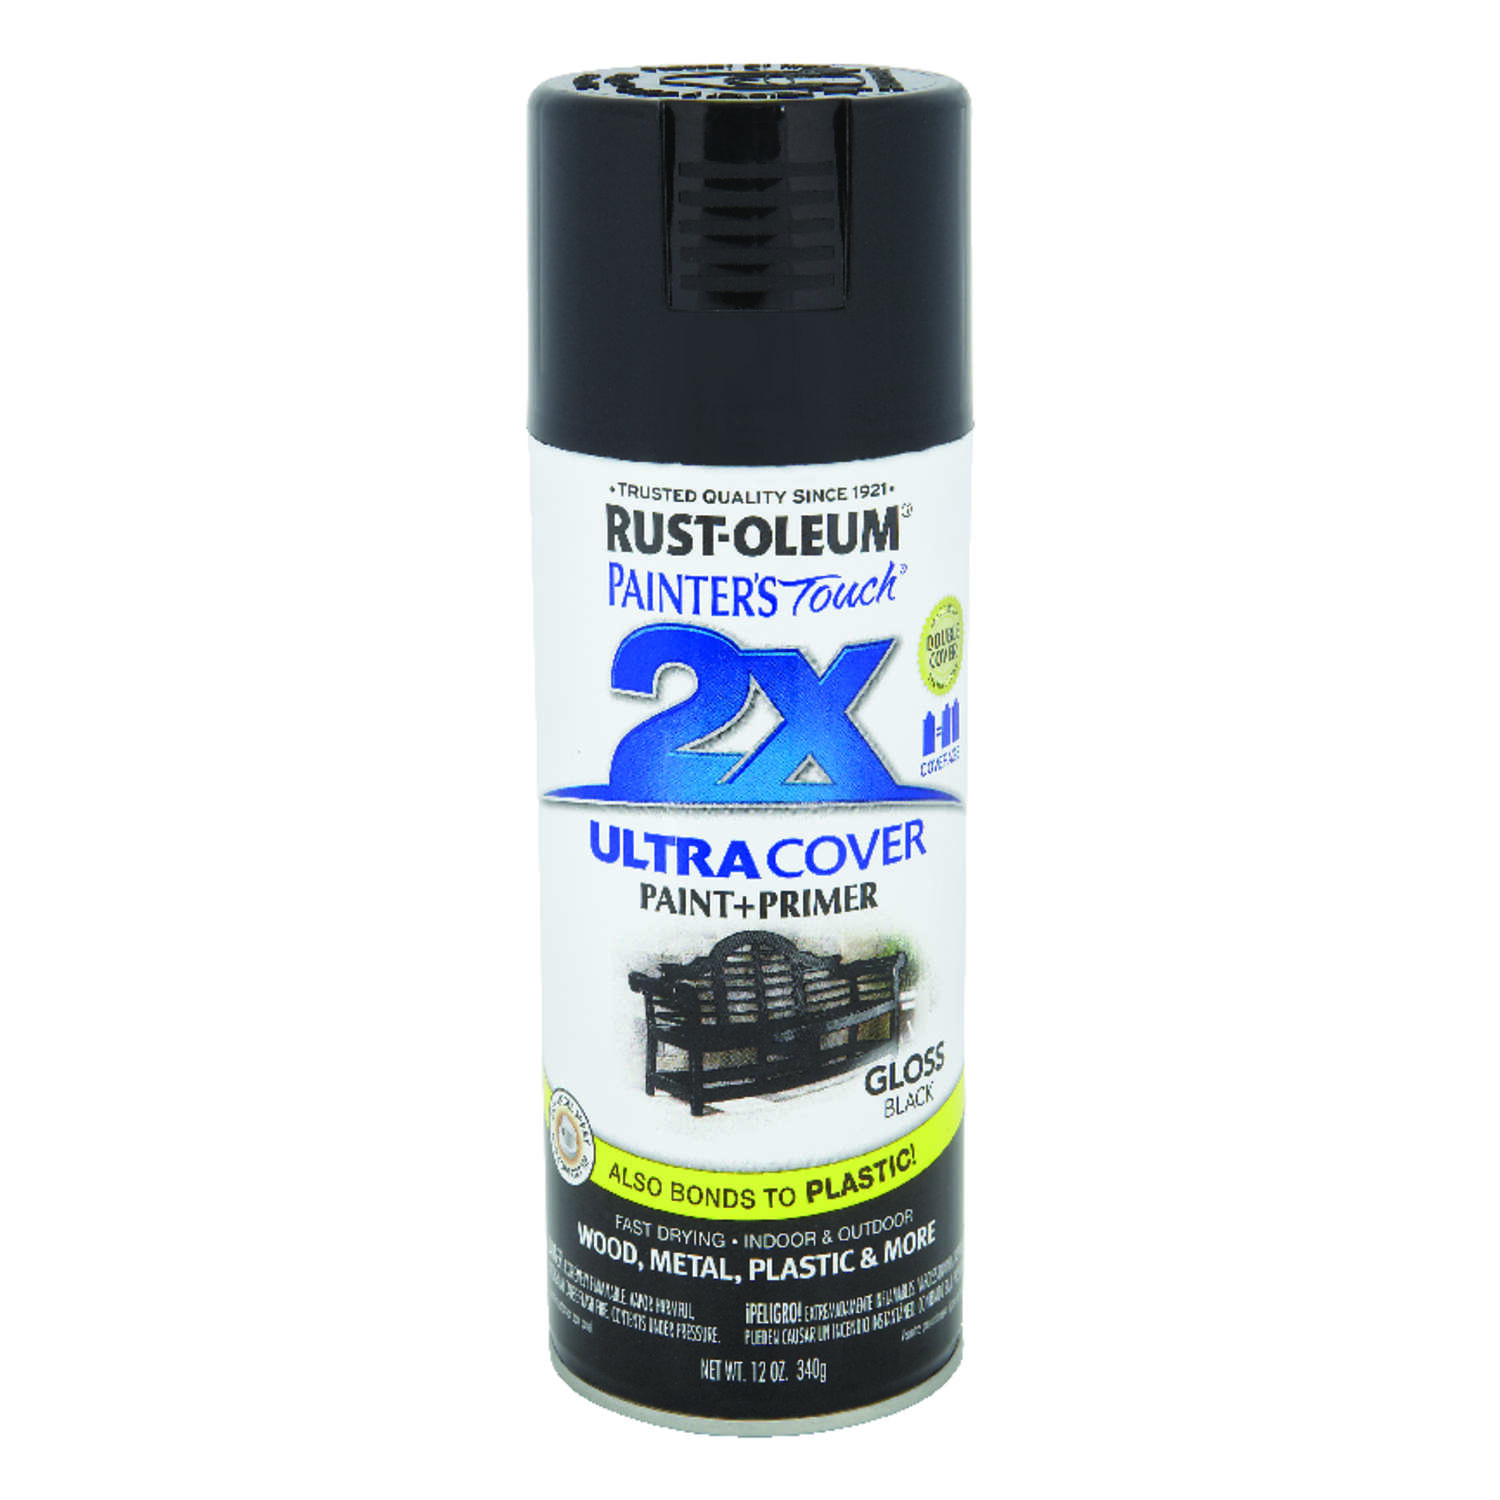 Rust-Oleum  Painter's Touch 2X Ultra Cover  Gloss  Black  Spray Paint  12 oz.